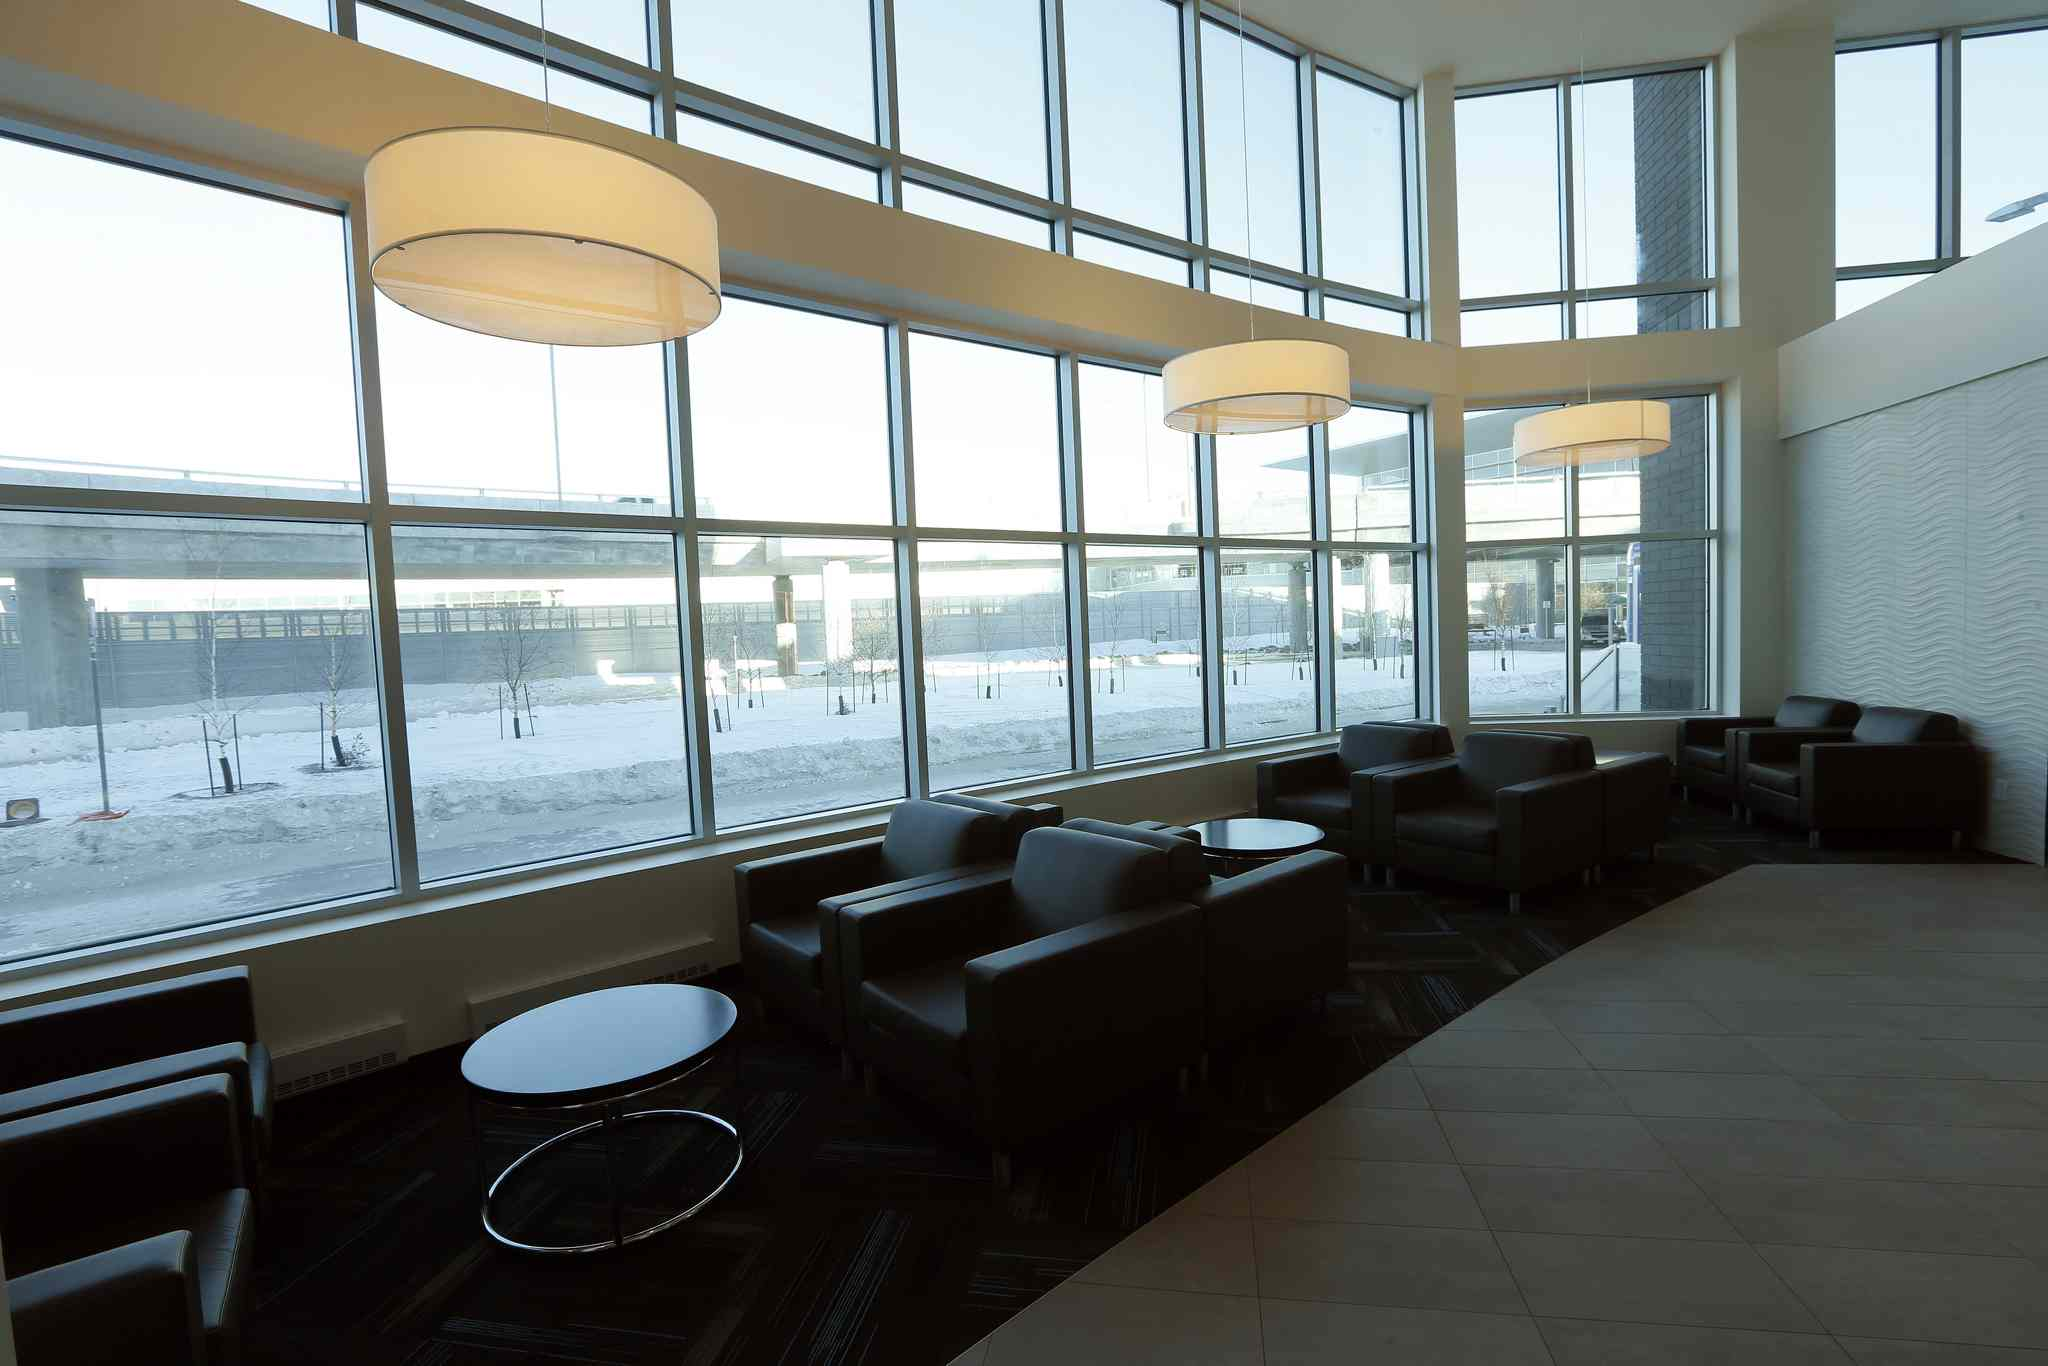 Seating in the lobby shows a view of the airport.